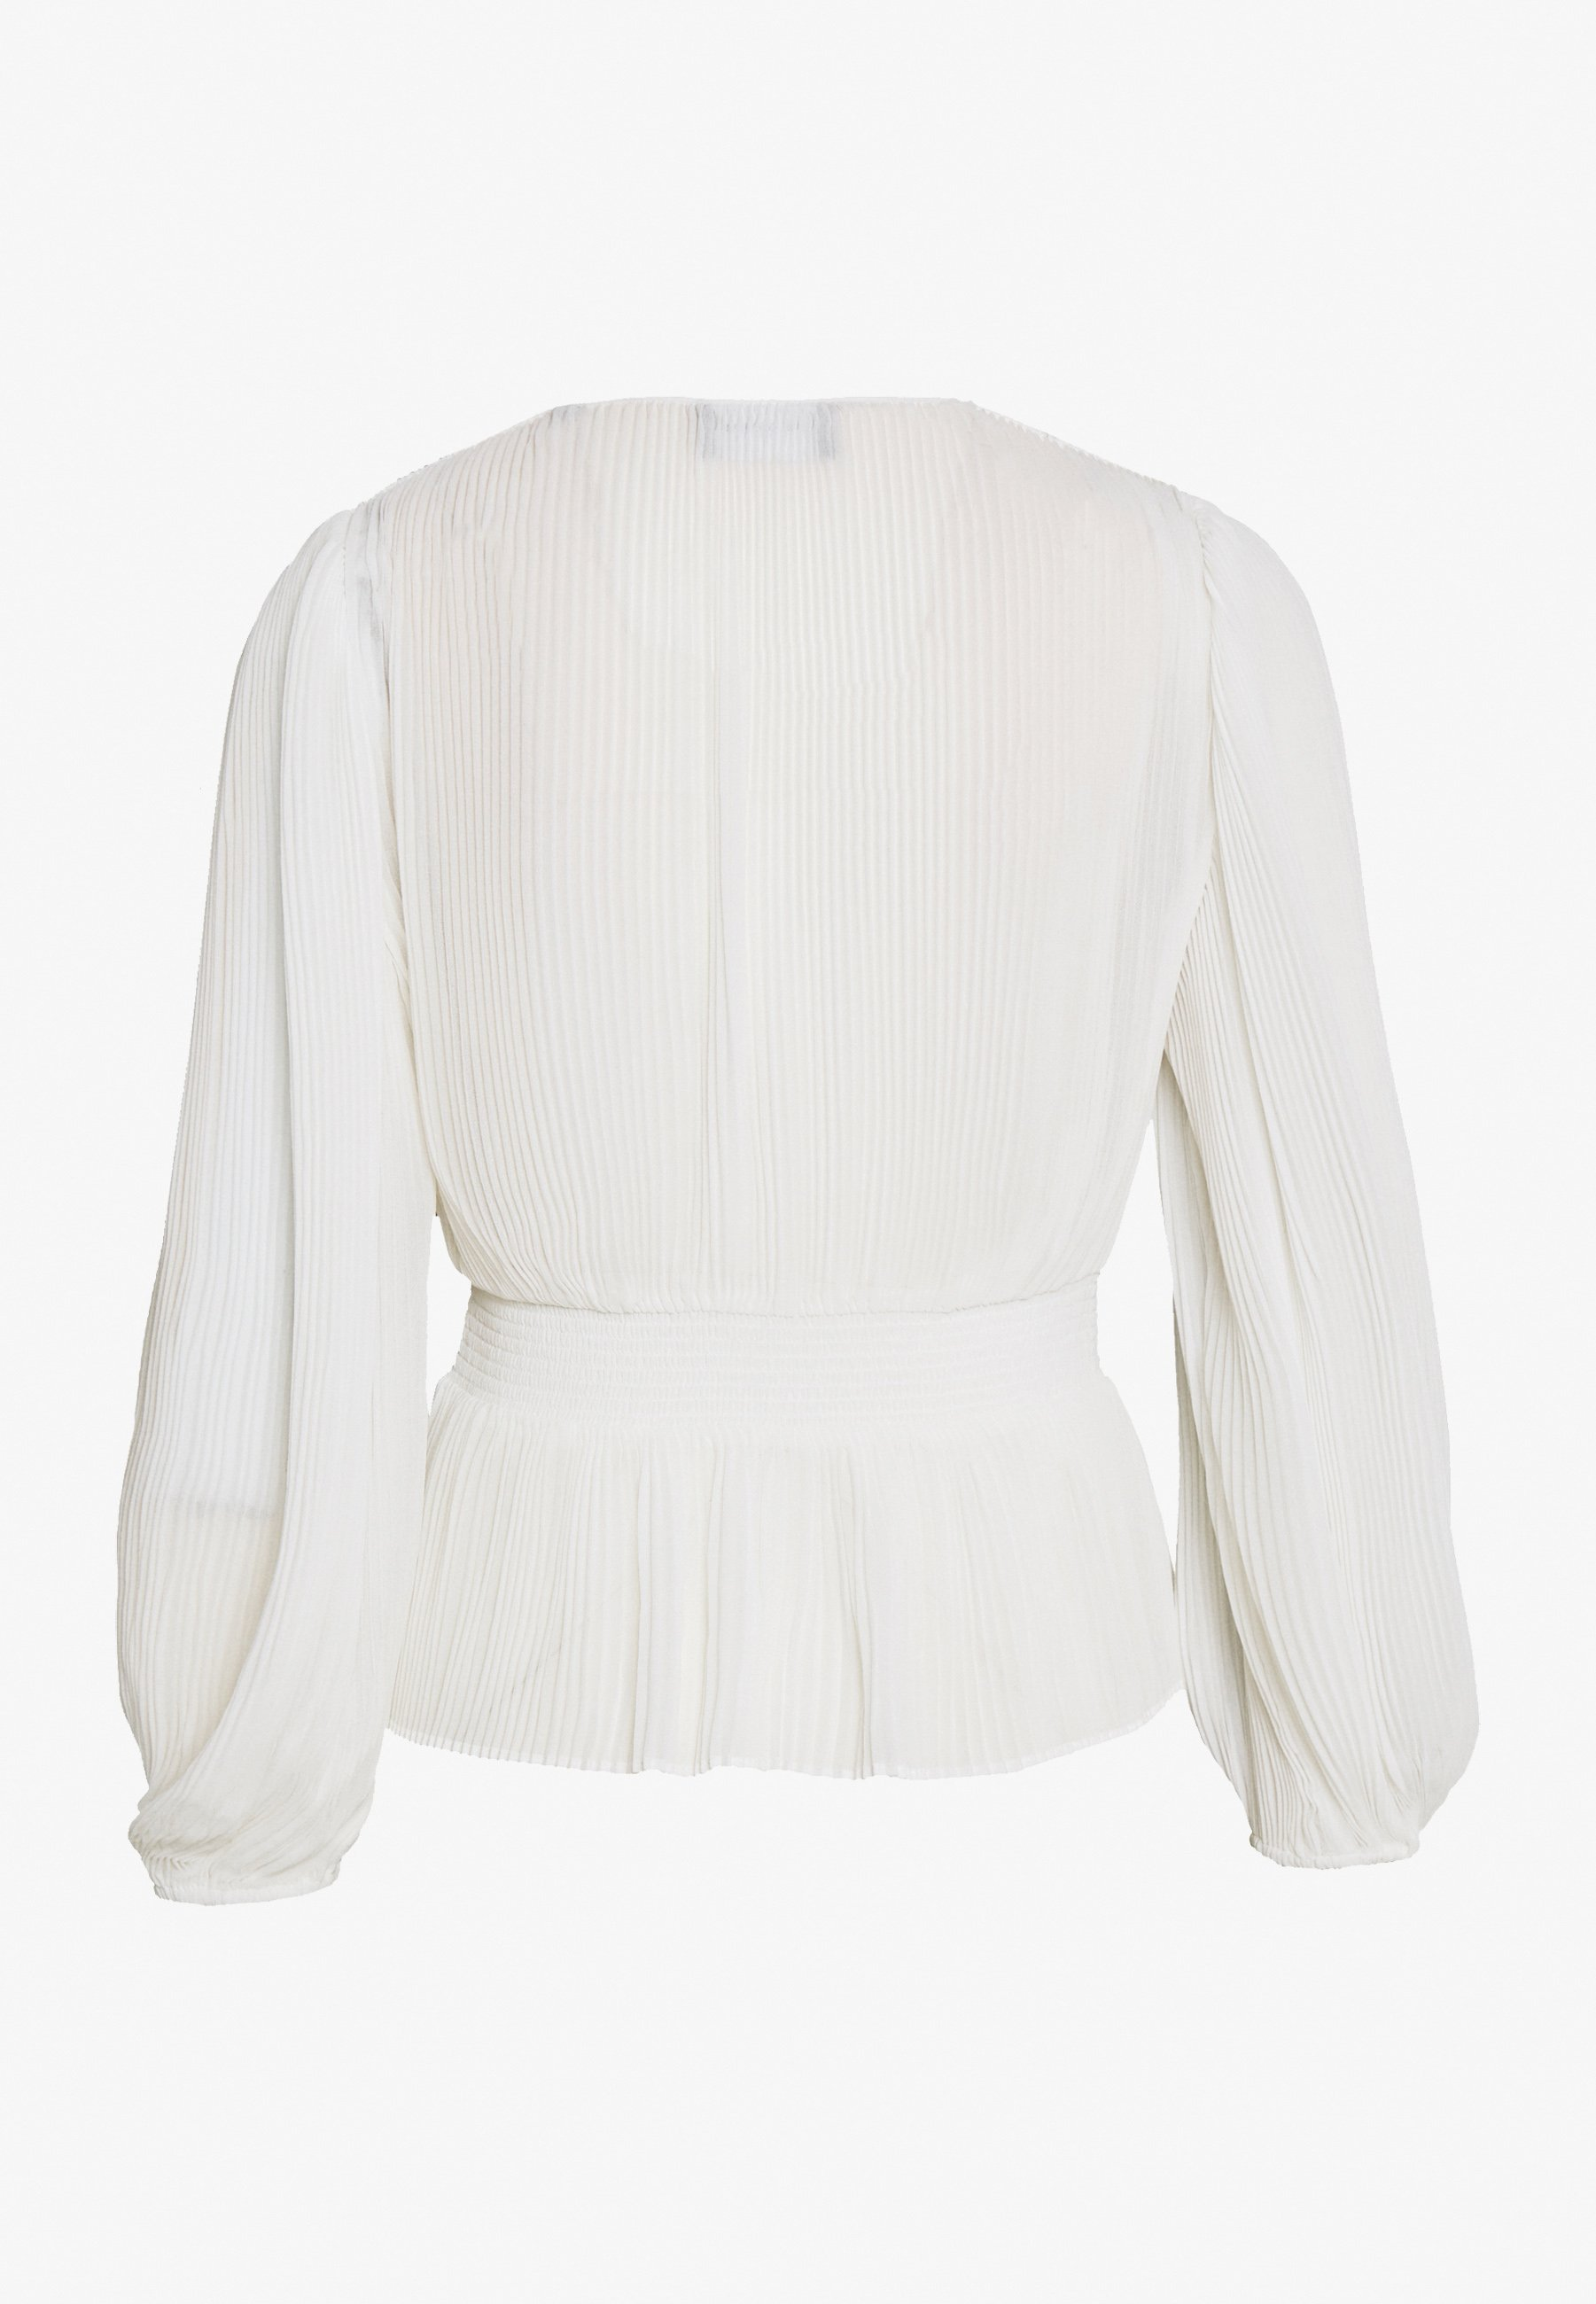 The Kooples Blouse - white